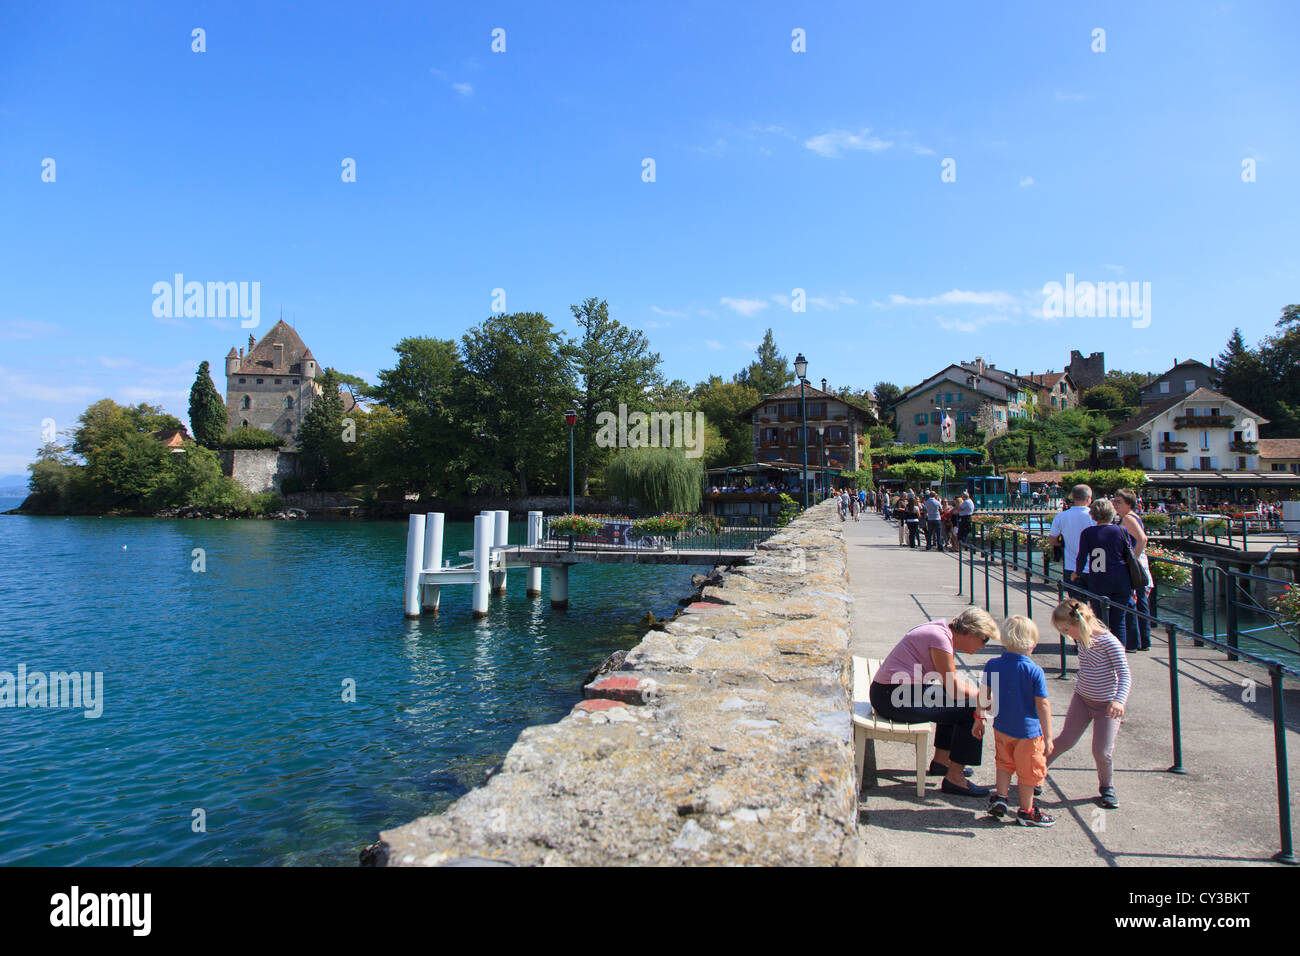 The view of the quay and castle in Yvoire on Lake Geneva - Stock Image